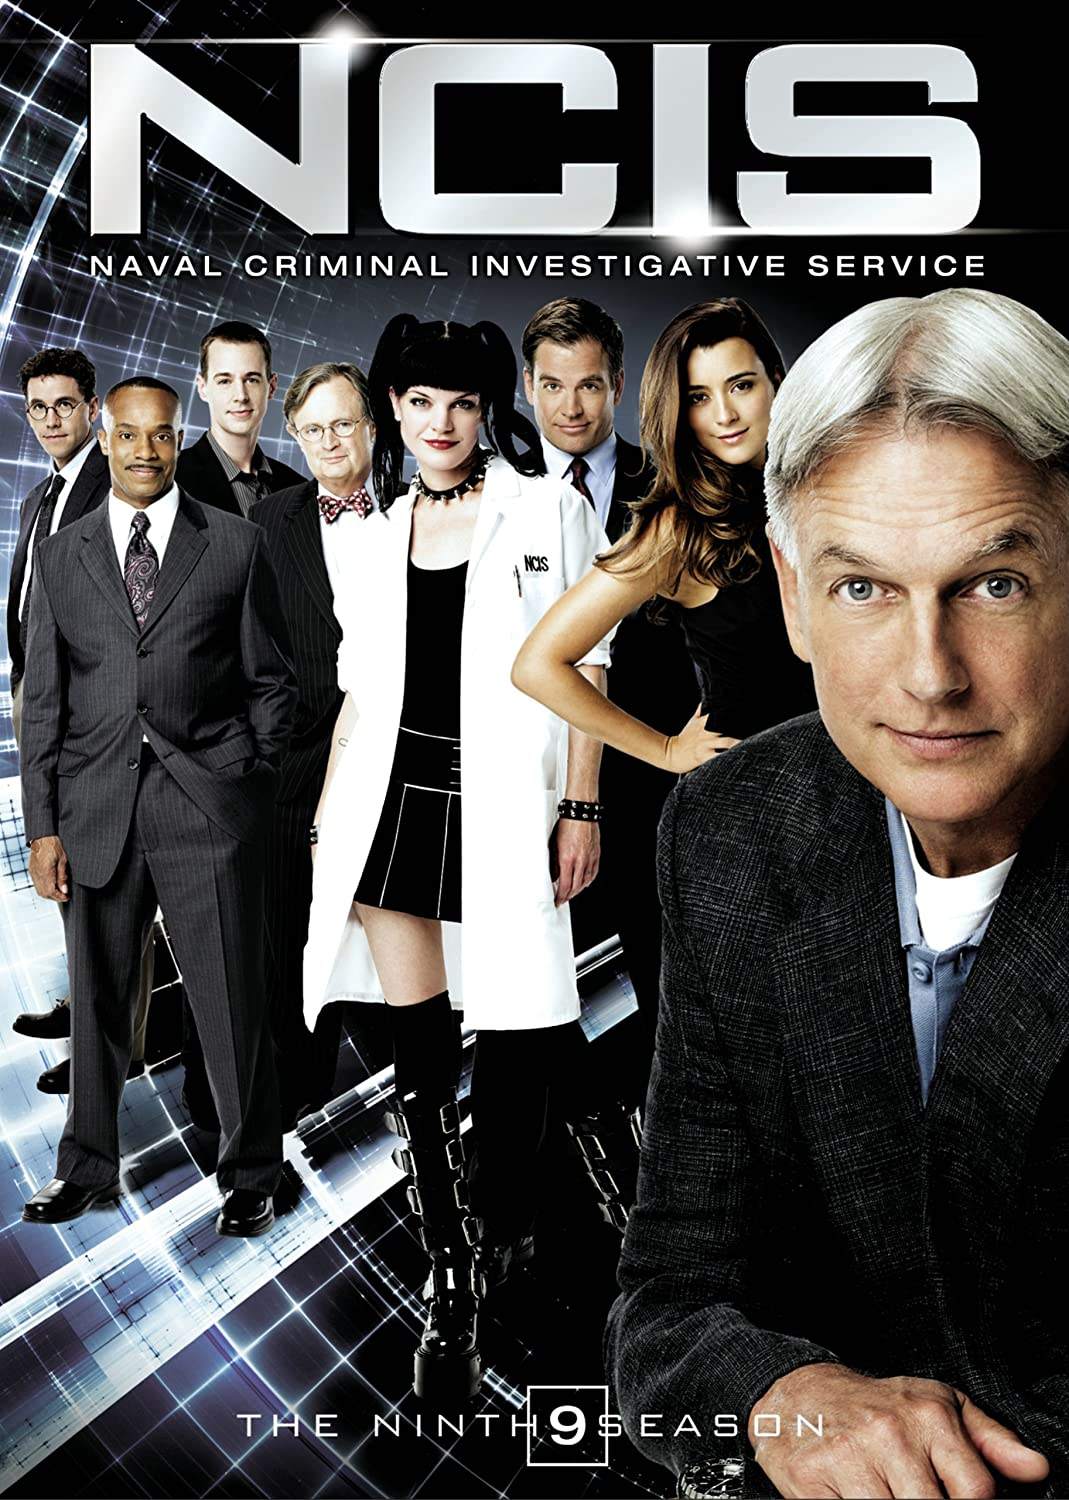 NCIS: The Complete Ninth Season $27.99